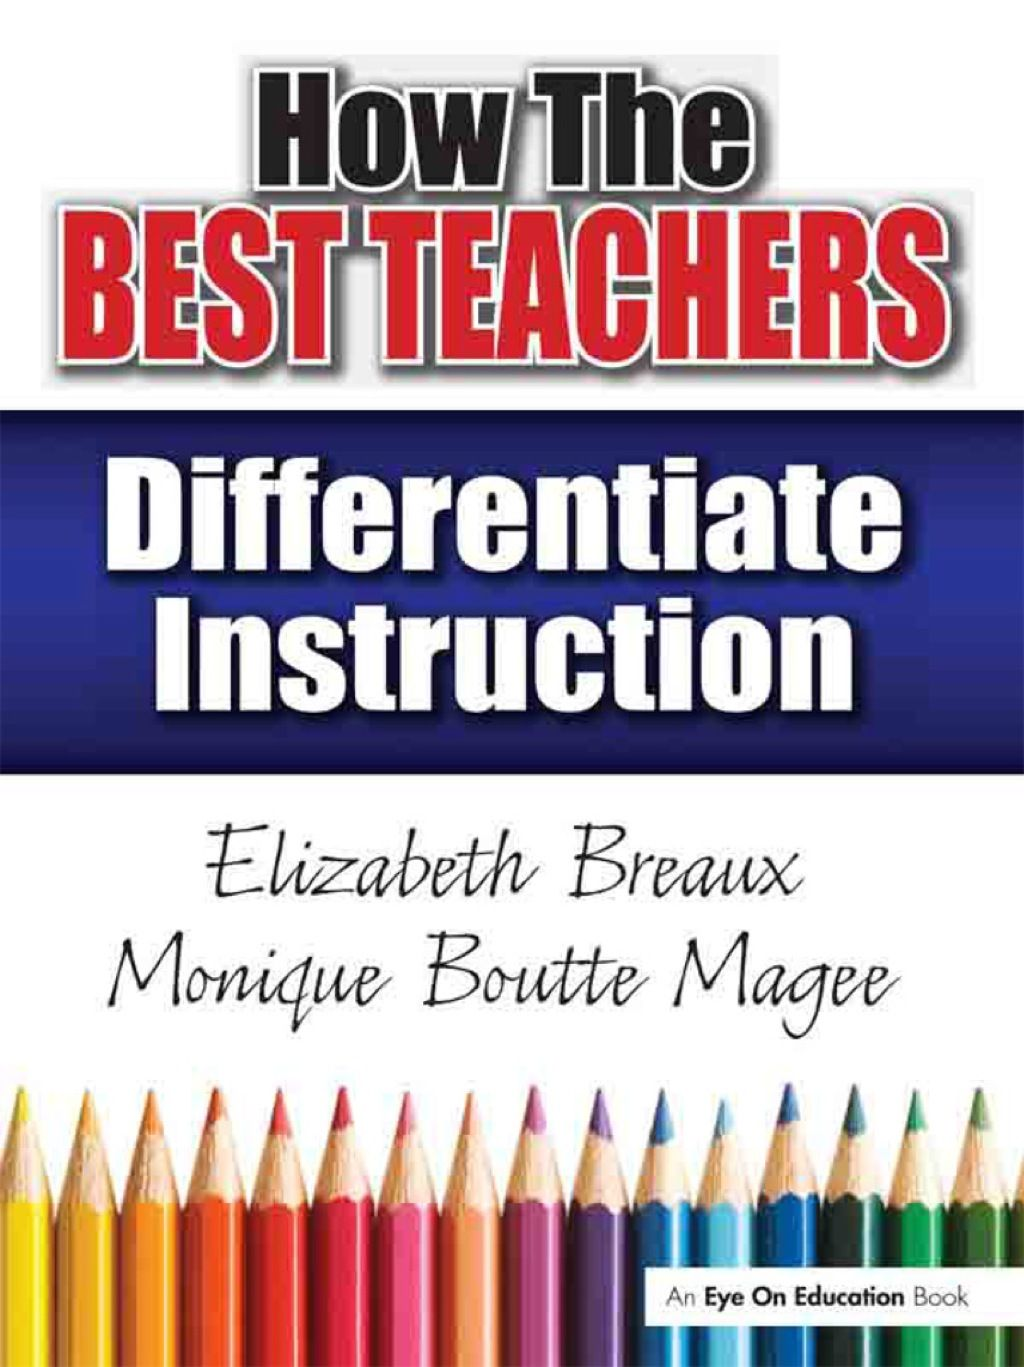 How the Best Teachers Differentiate Instruction (eBook Rental) is part of Differentiated instruction, Teaching strategies, Teaching, Teaching classroom, Teacher resources, Teacher - eBook Rental  By Monique Magee; Elizabeth Breaux PRINT ISBN 9781138135666 ETEXT ISBN 9781317927136 Edition 1